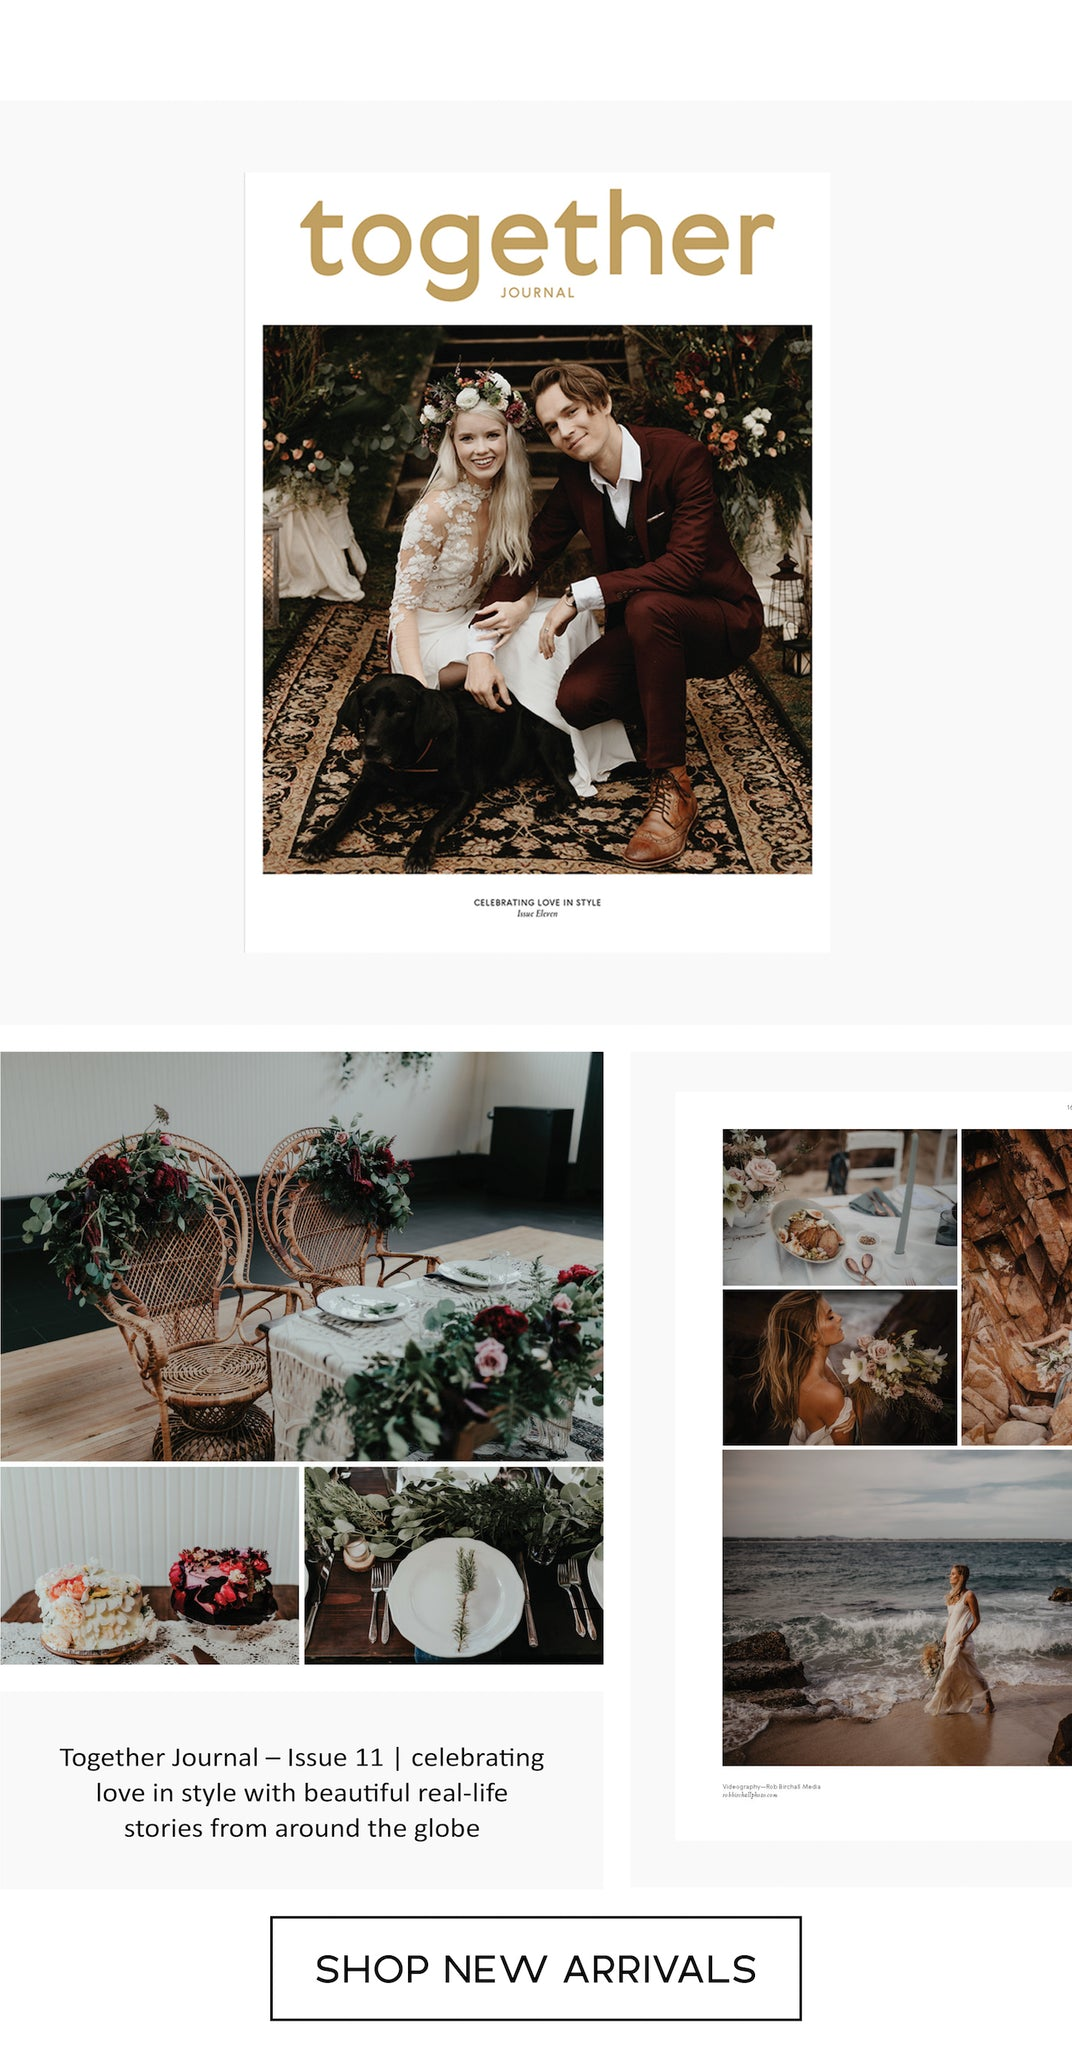 Together Journal - Issue 11 - Wedding Magazine - Paper Plane Store